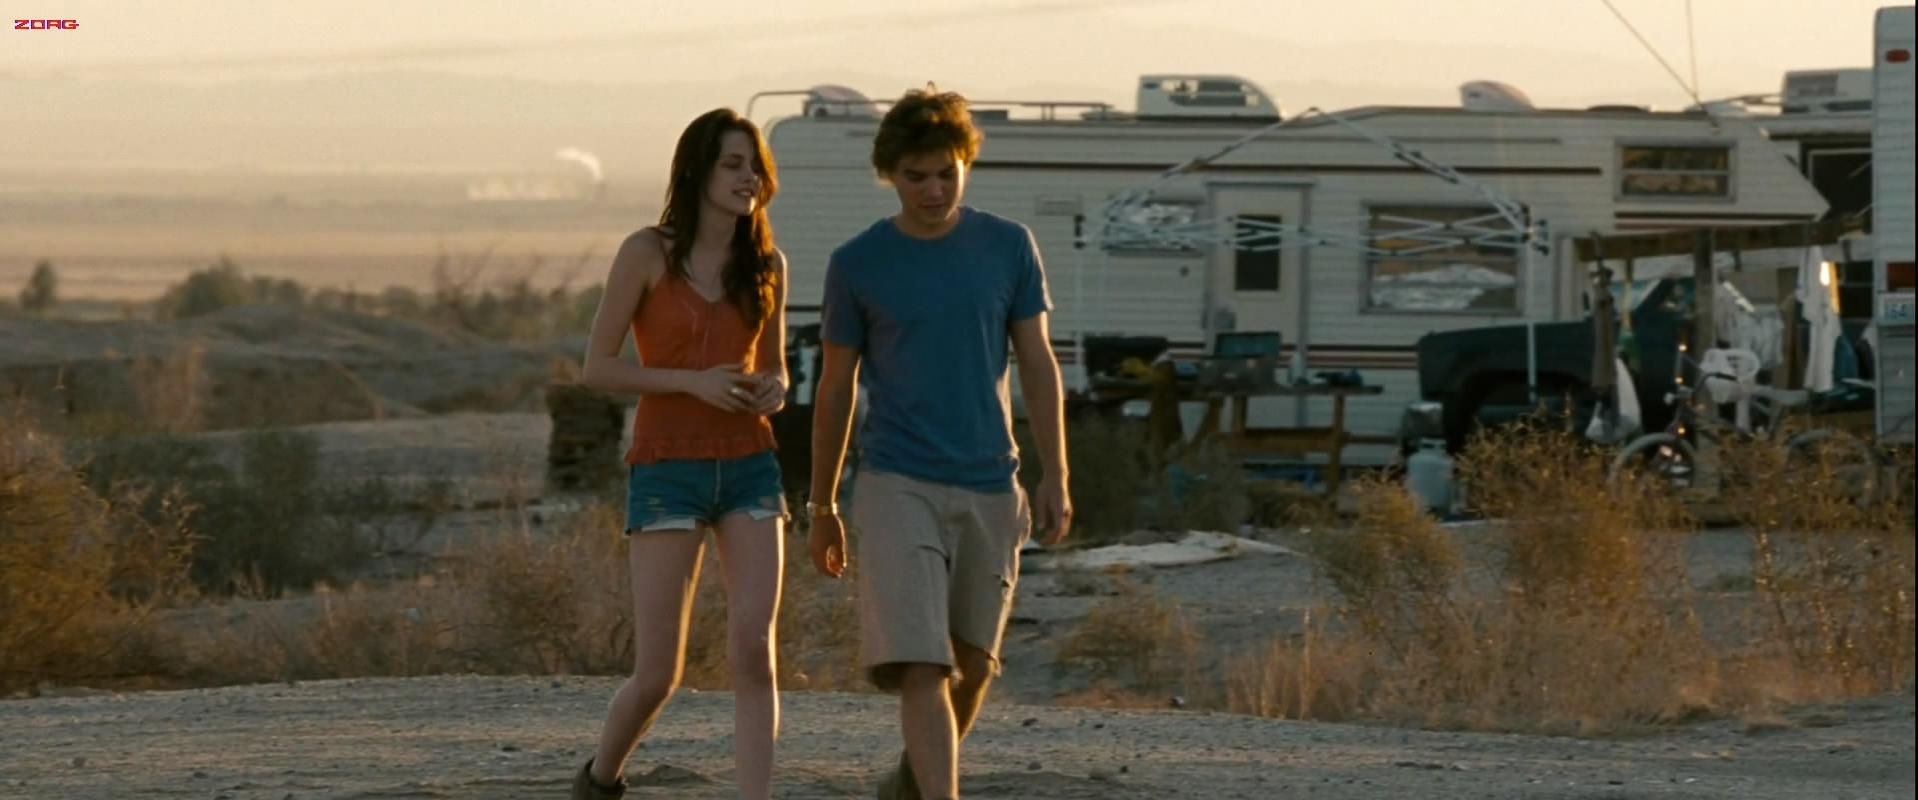 Kristen Stewart sexy - Kristen Stewart hot and very cute in Into the wild (2007)